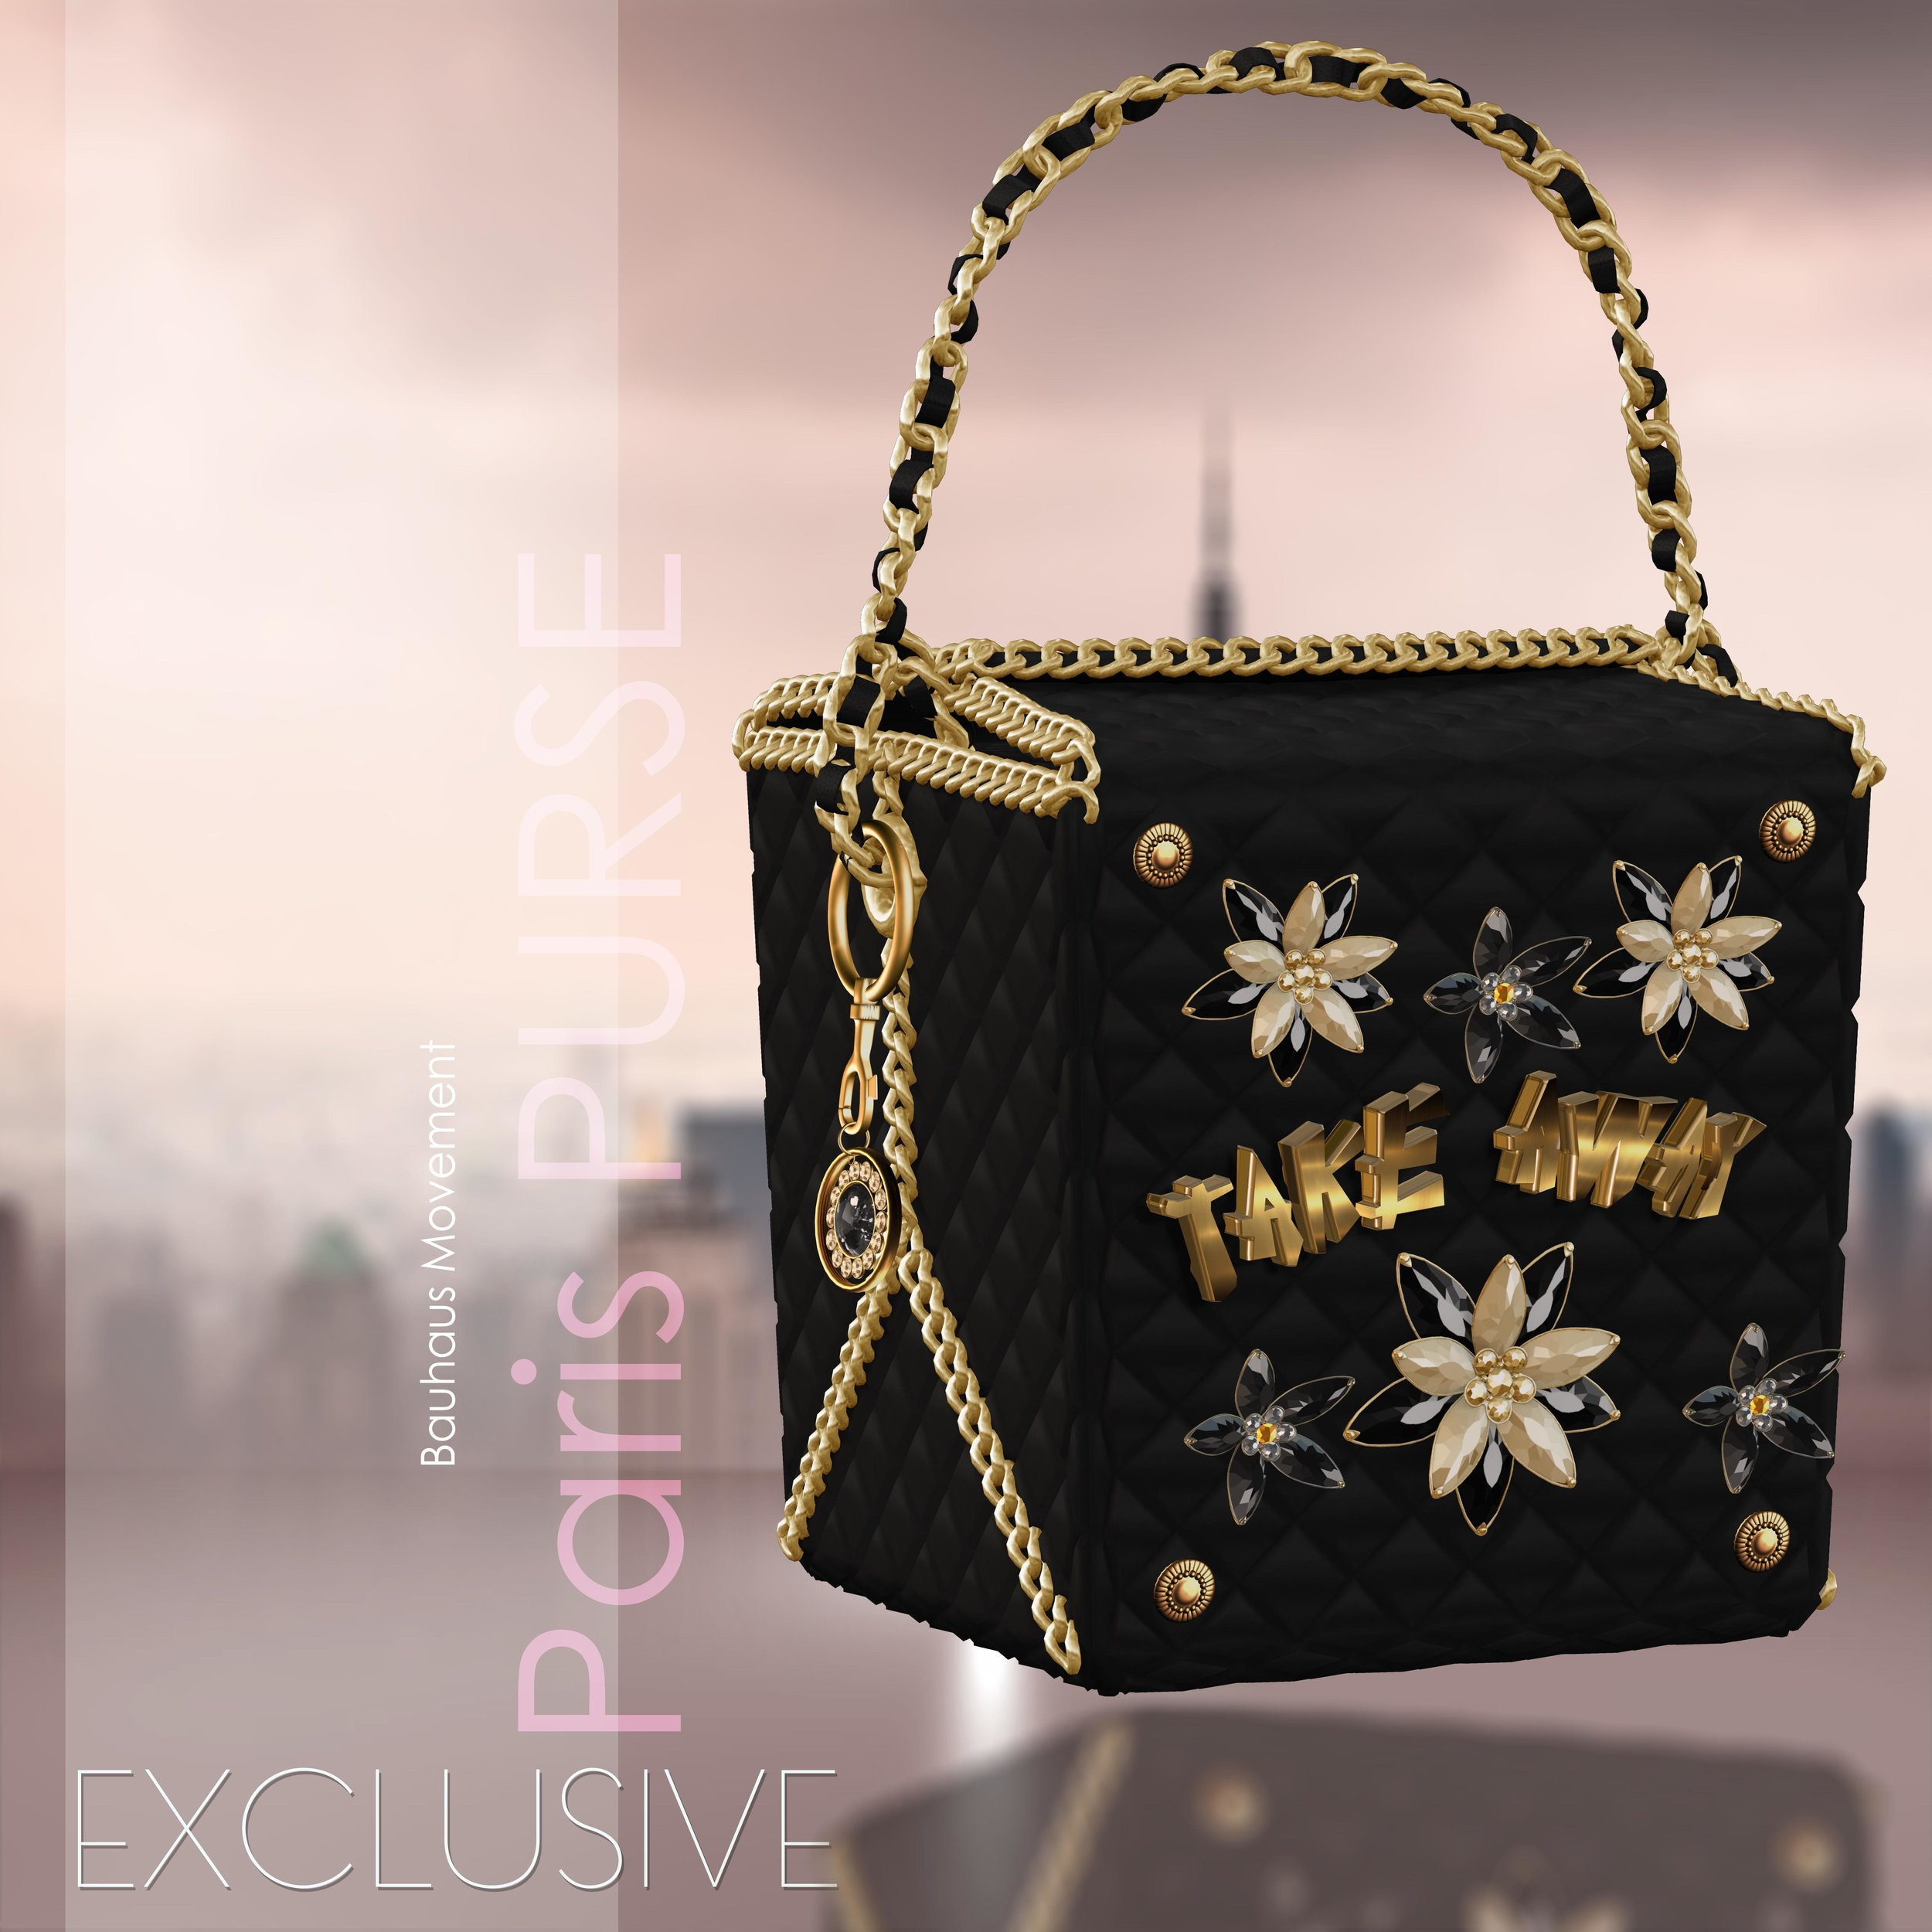 Bauhaus Movement - Paris Purse EXCLUSIVE.jpg